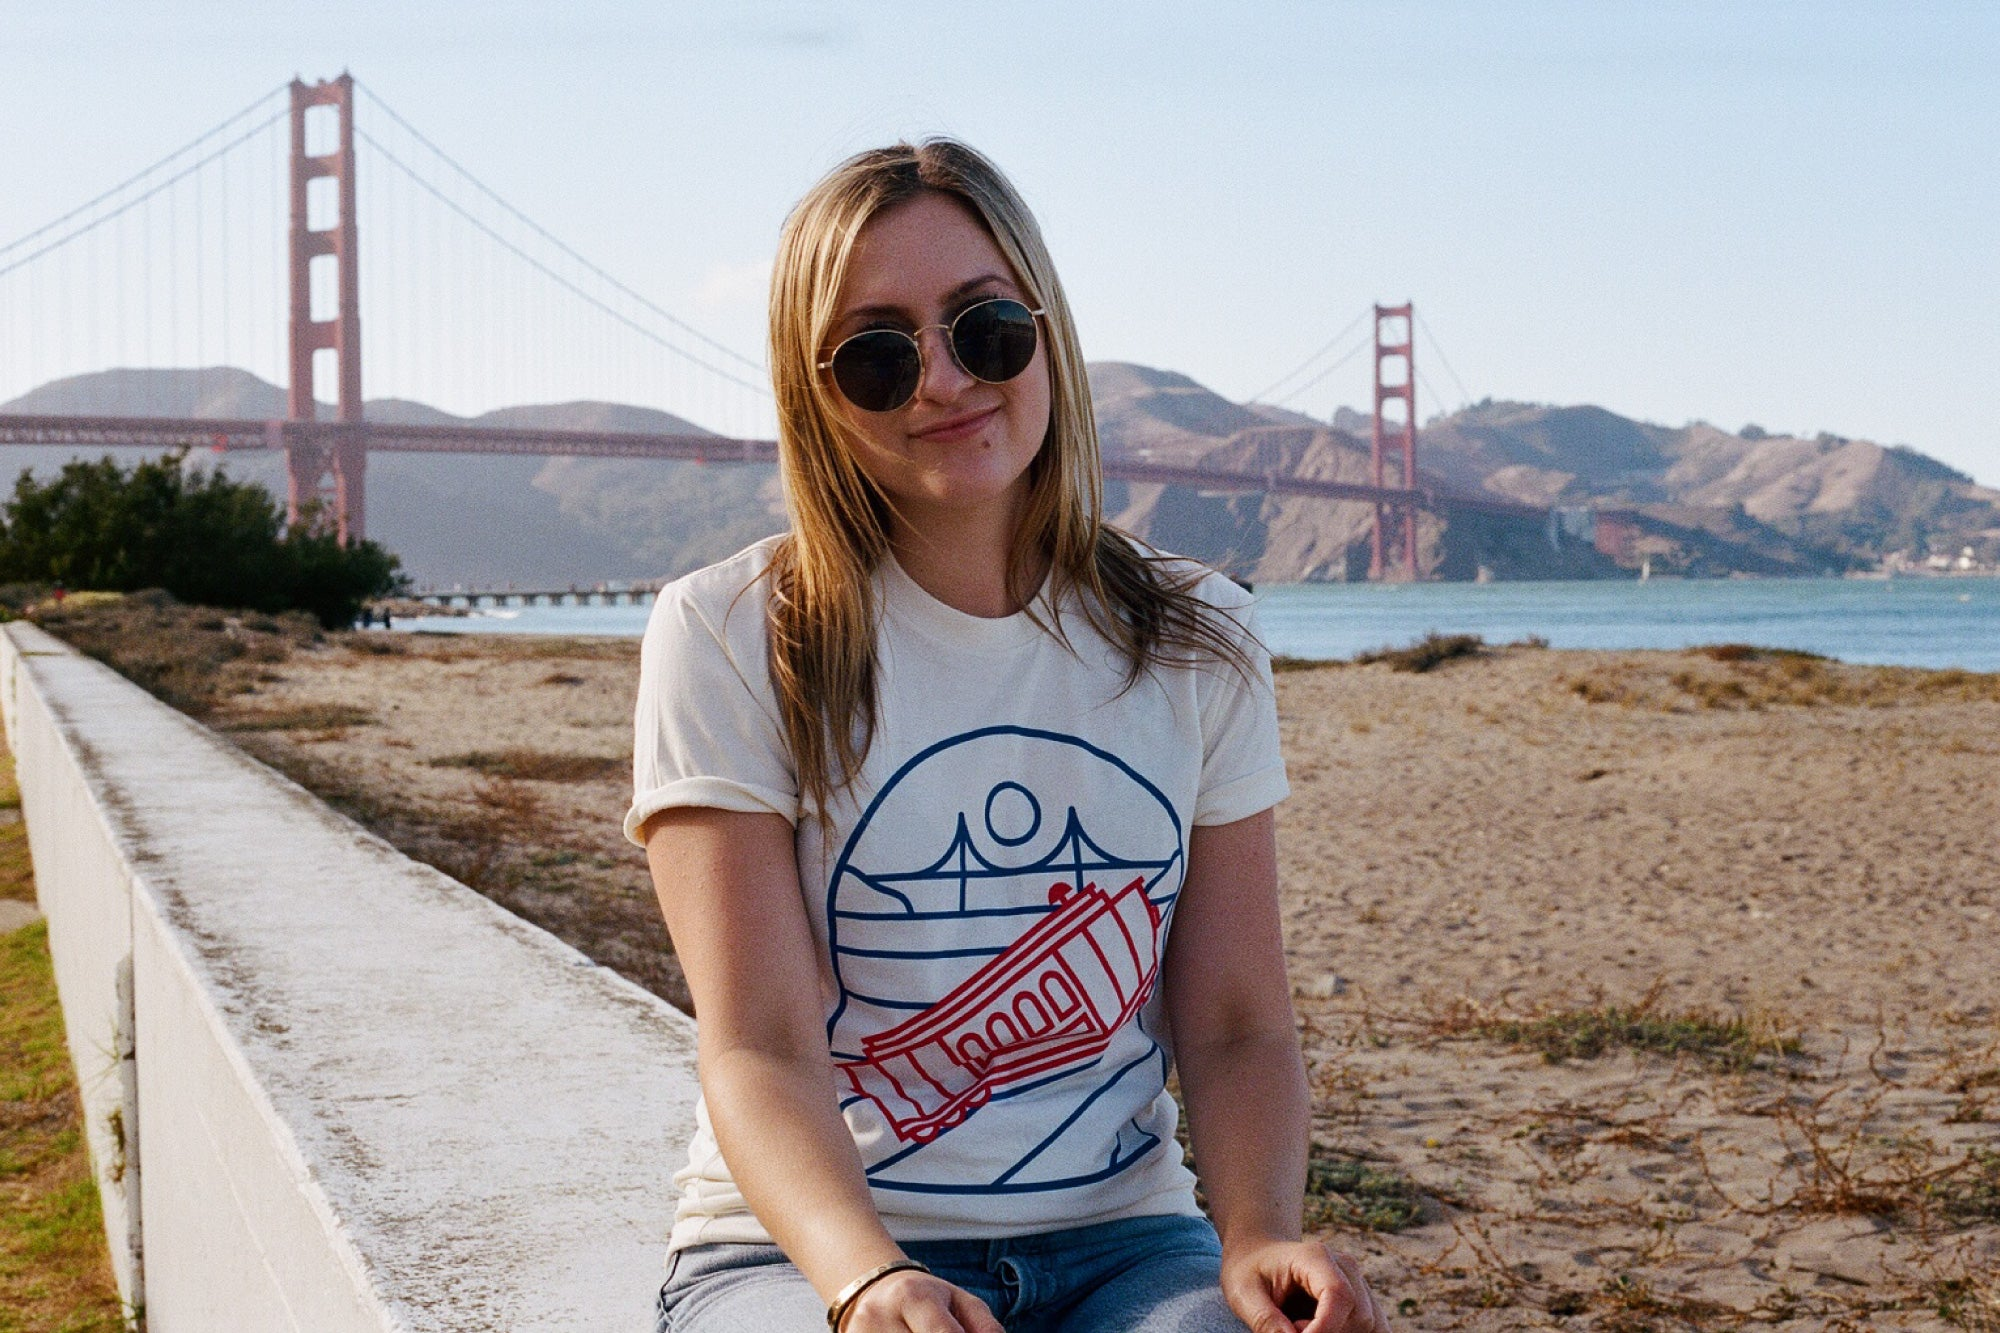 culk cable car t-shirt golden gate bridge